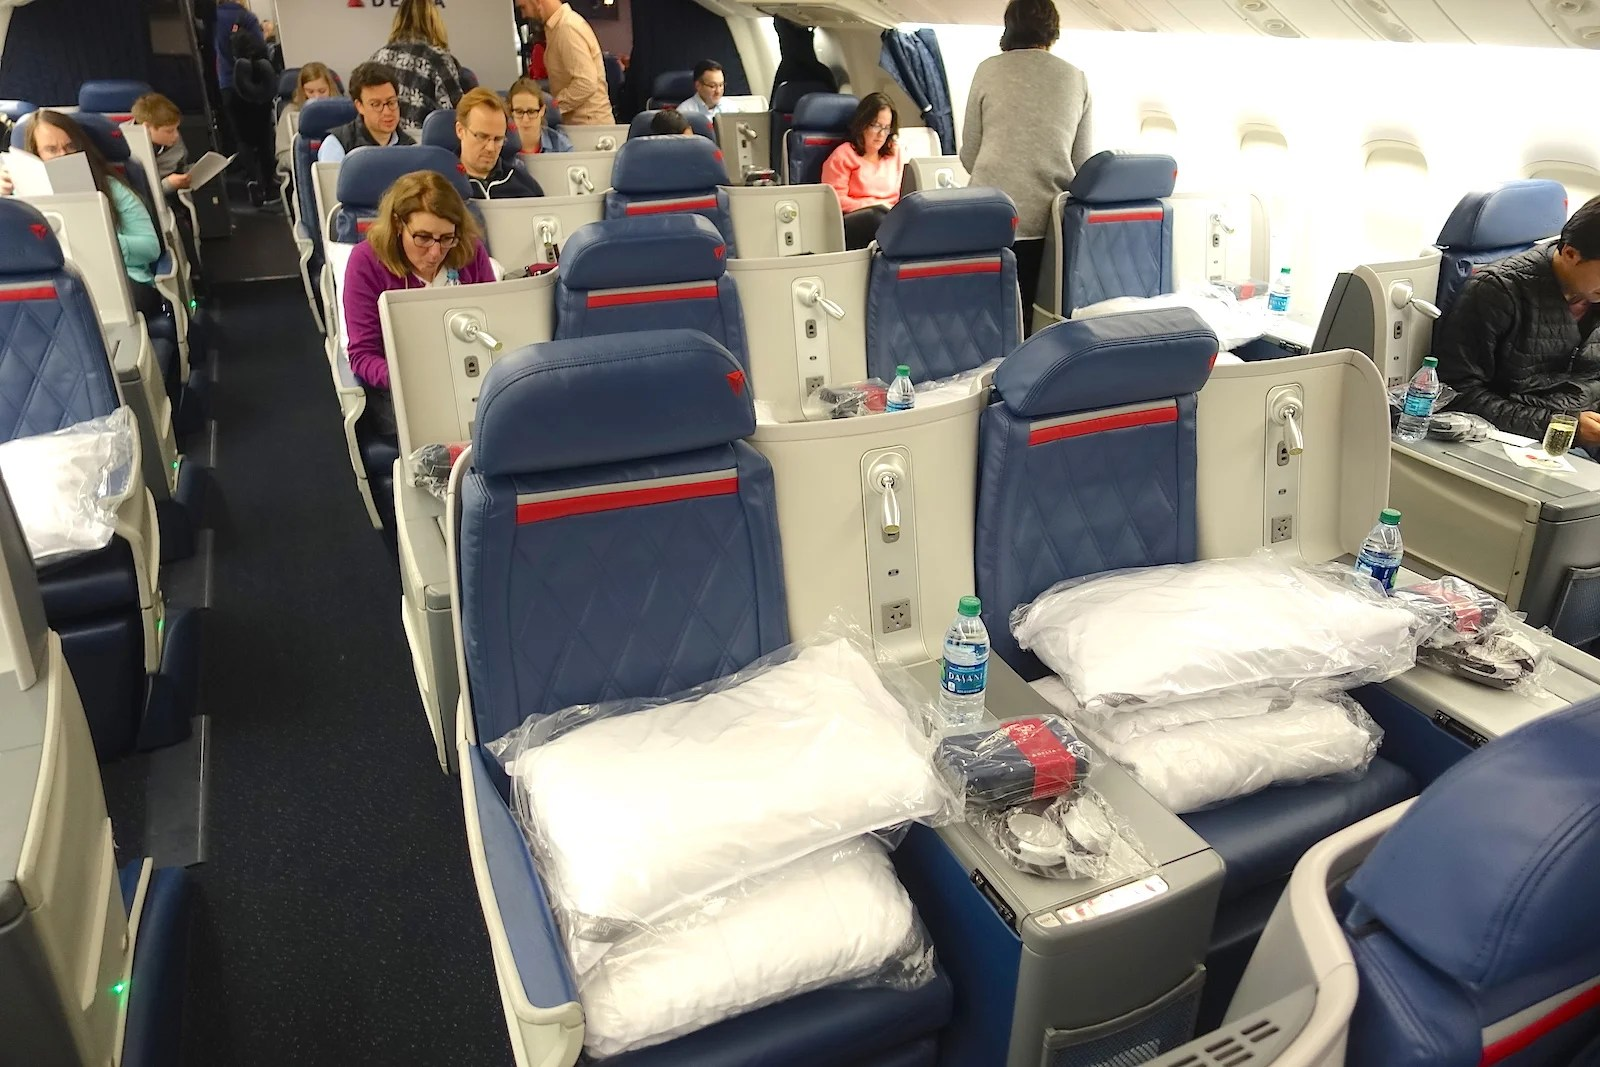 Delta flights from seattle to san diego today